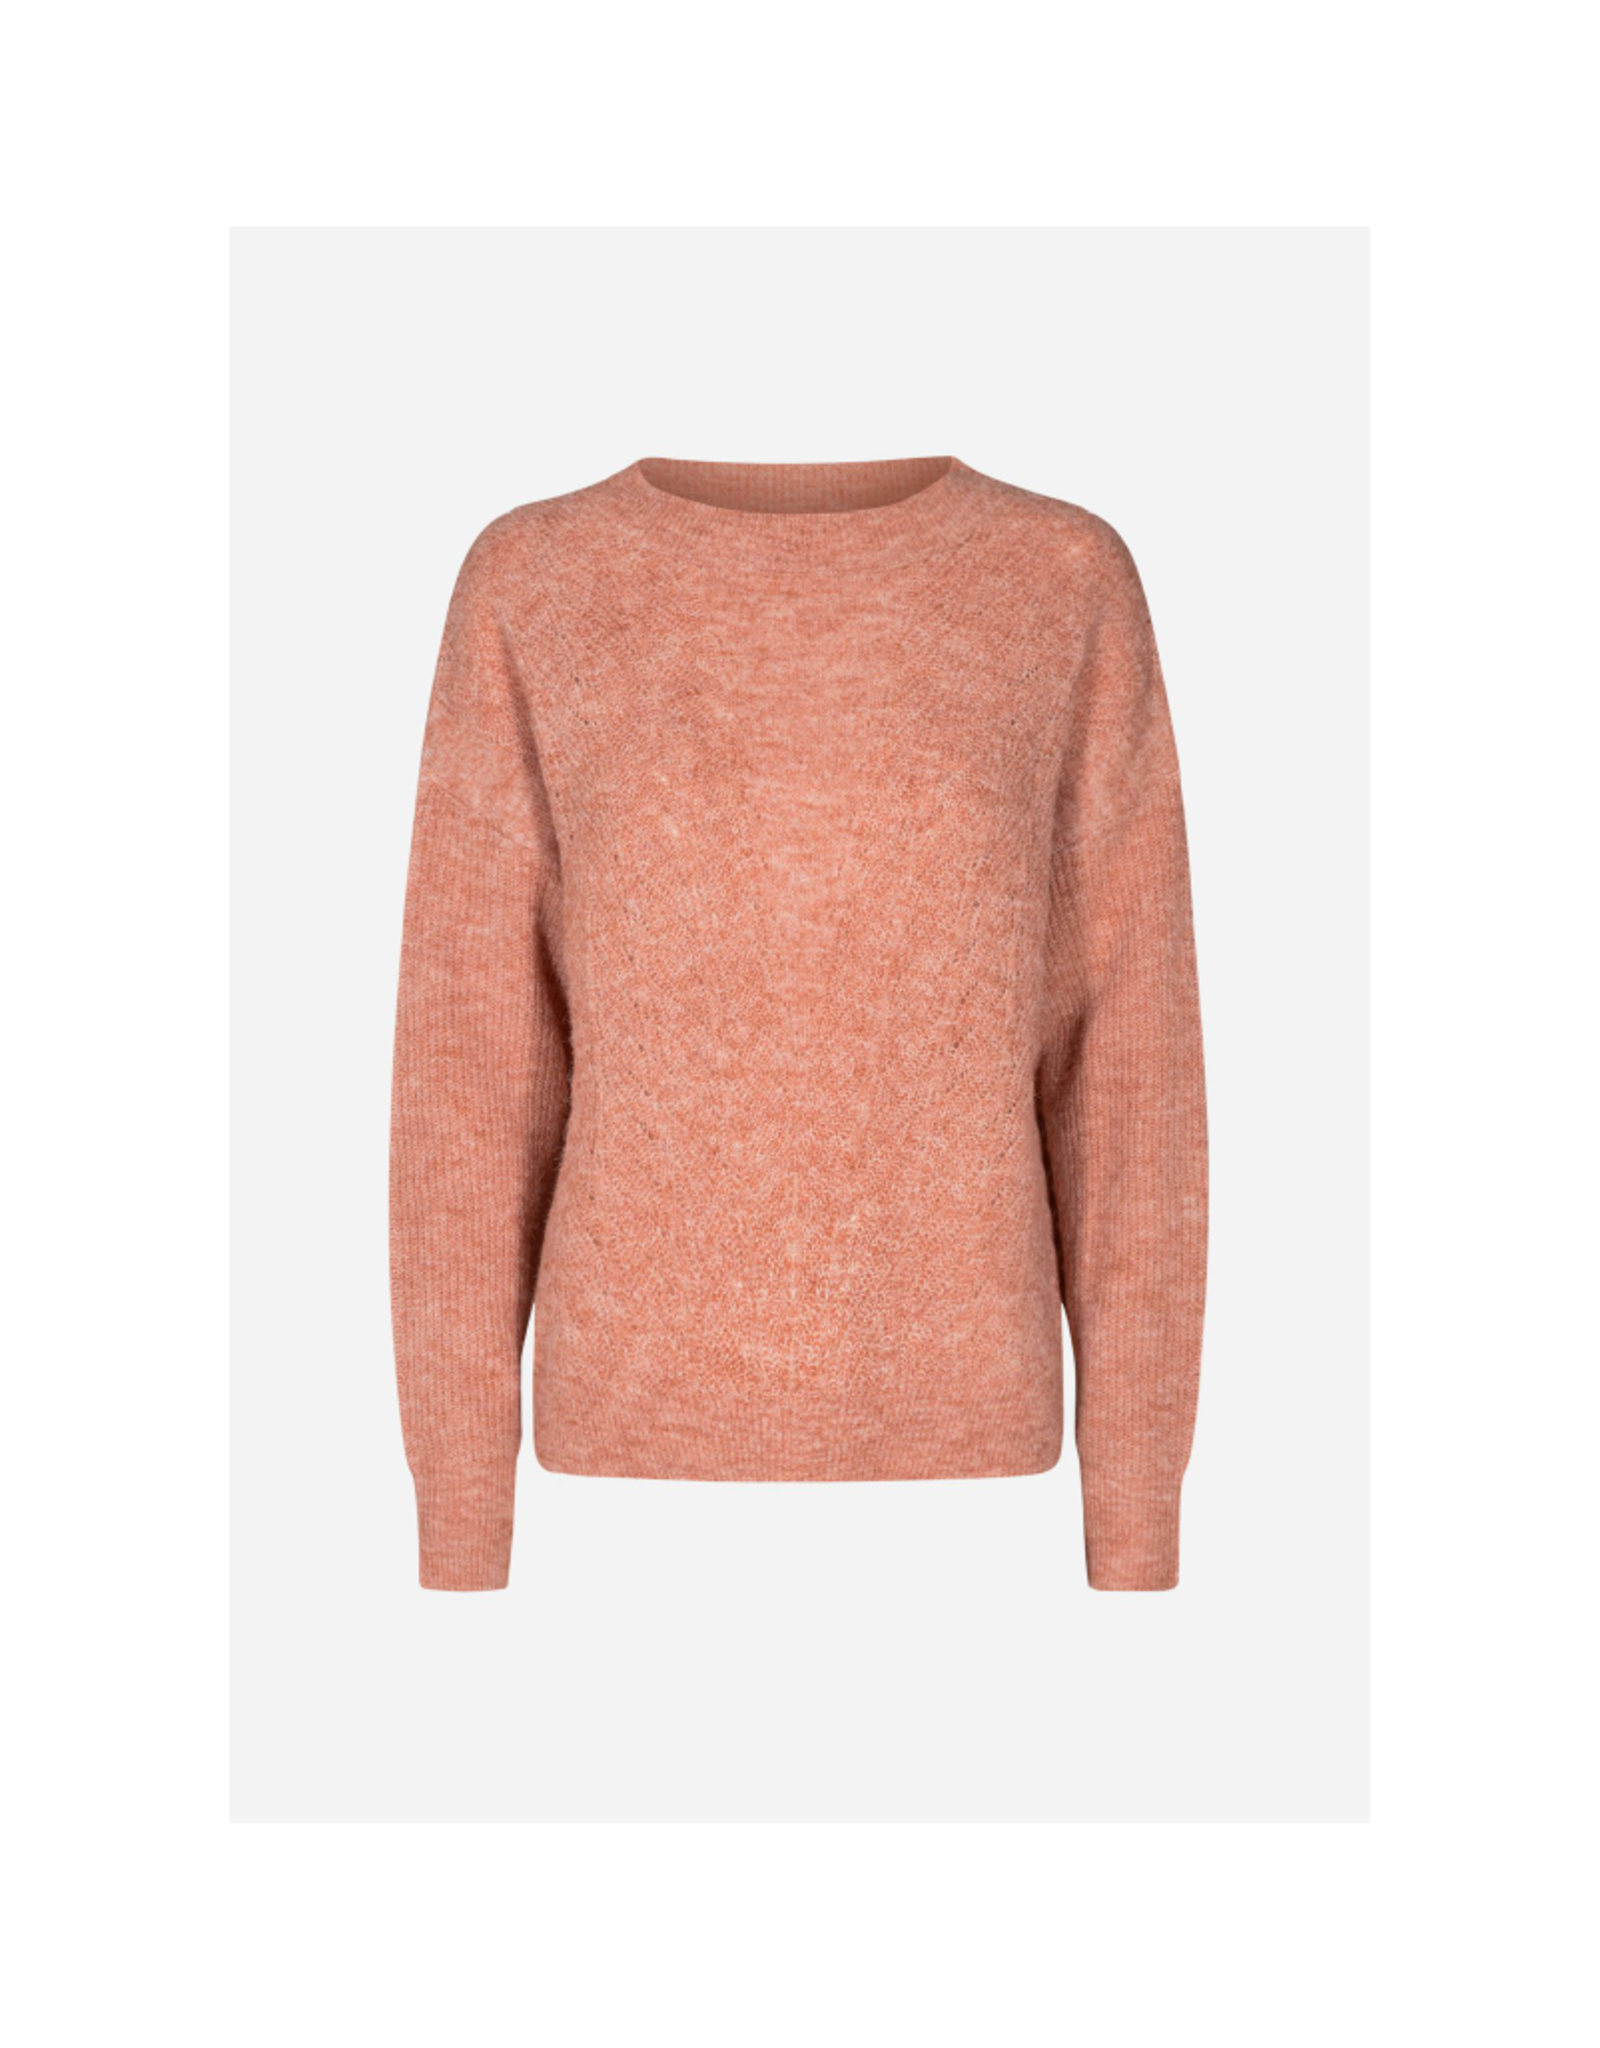 Soya Concept Fashioned Knit Sweater